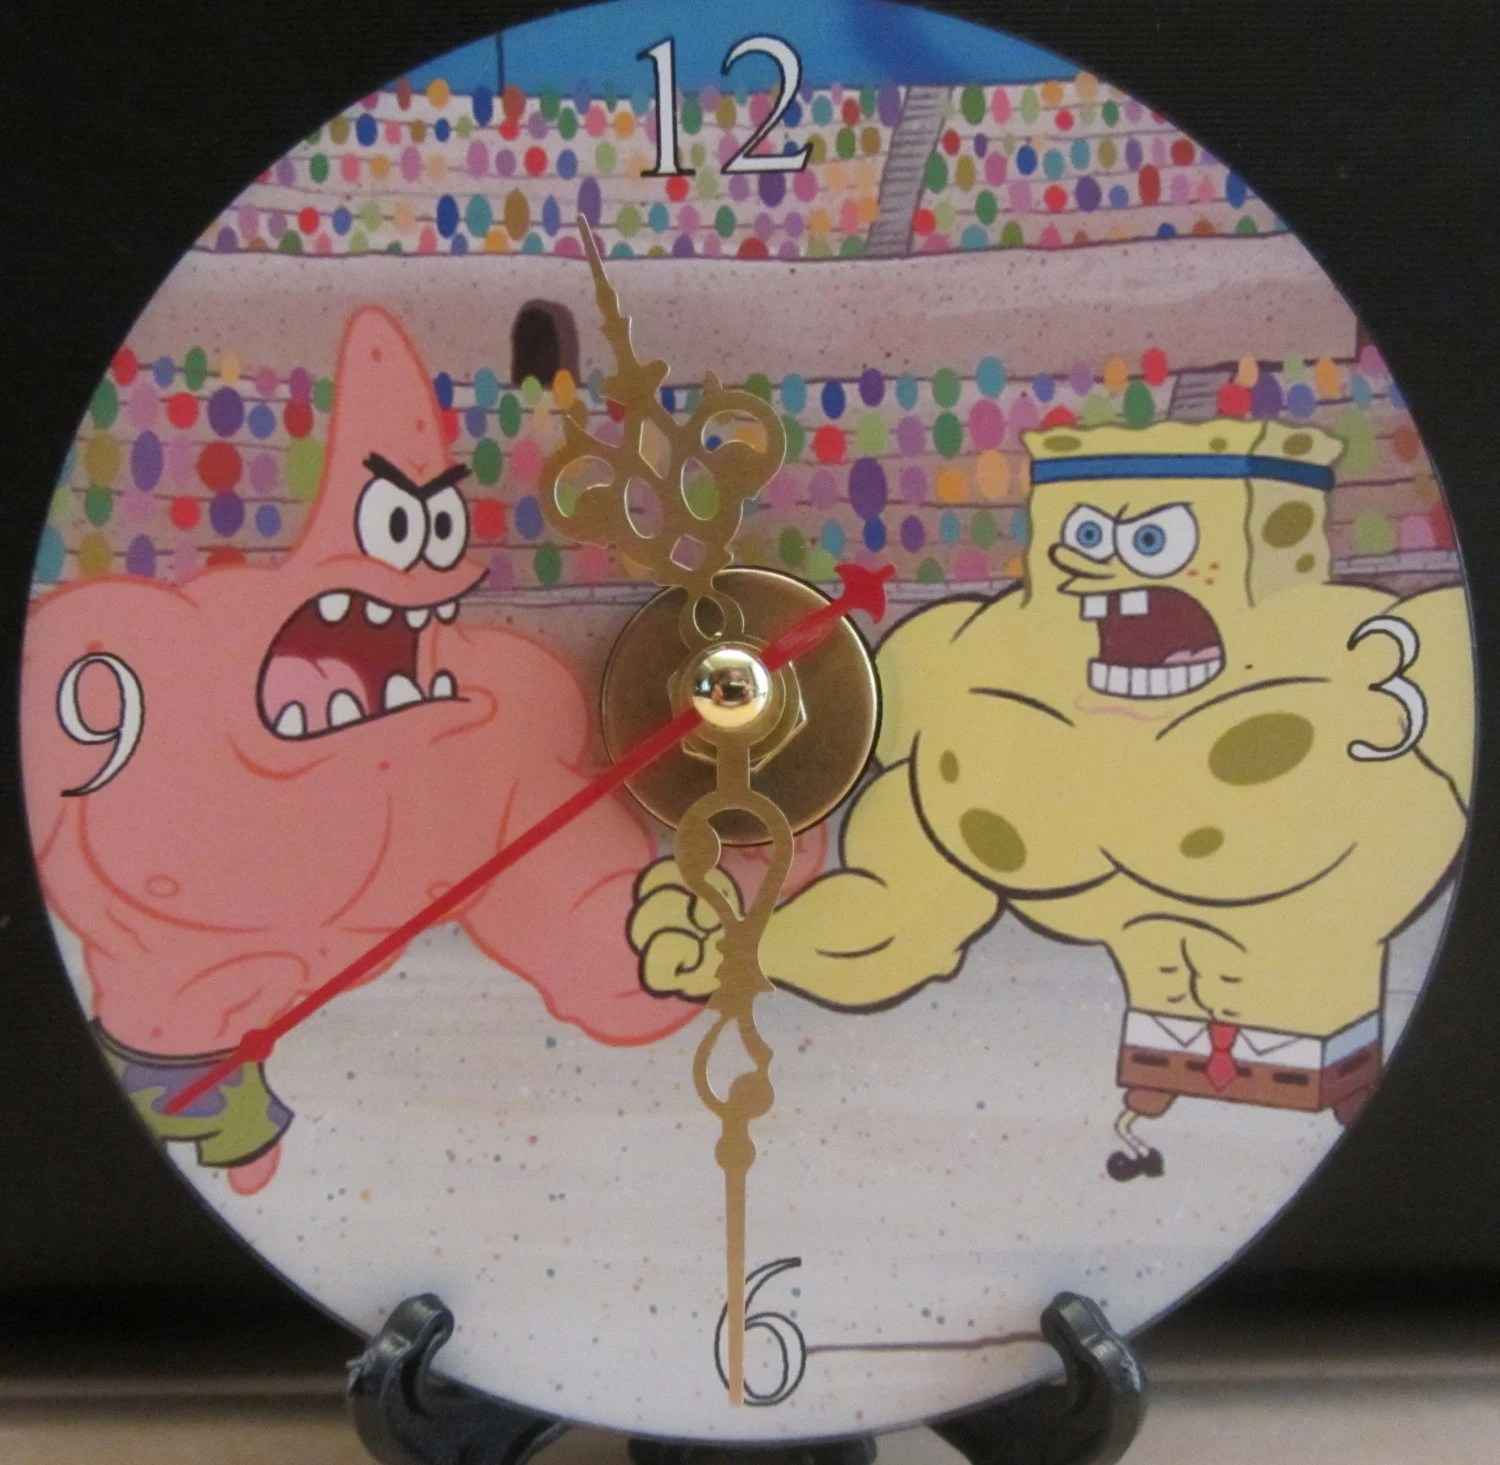 brand new spongebob squarepants